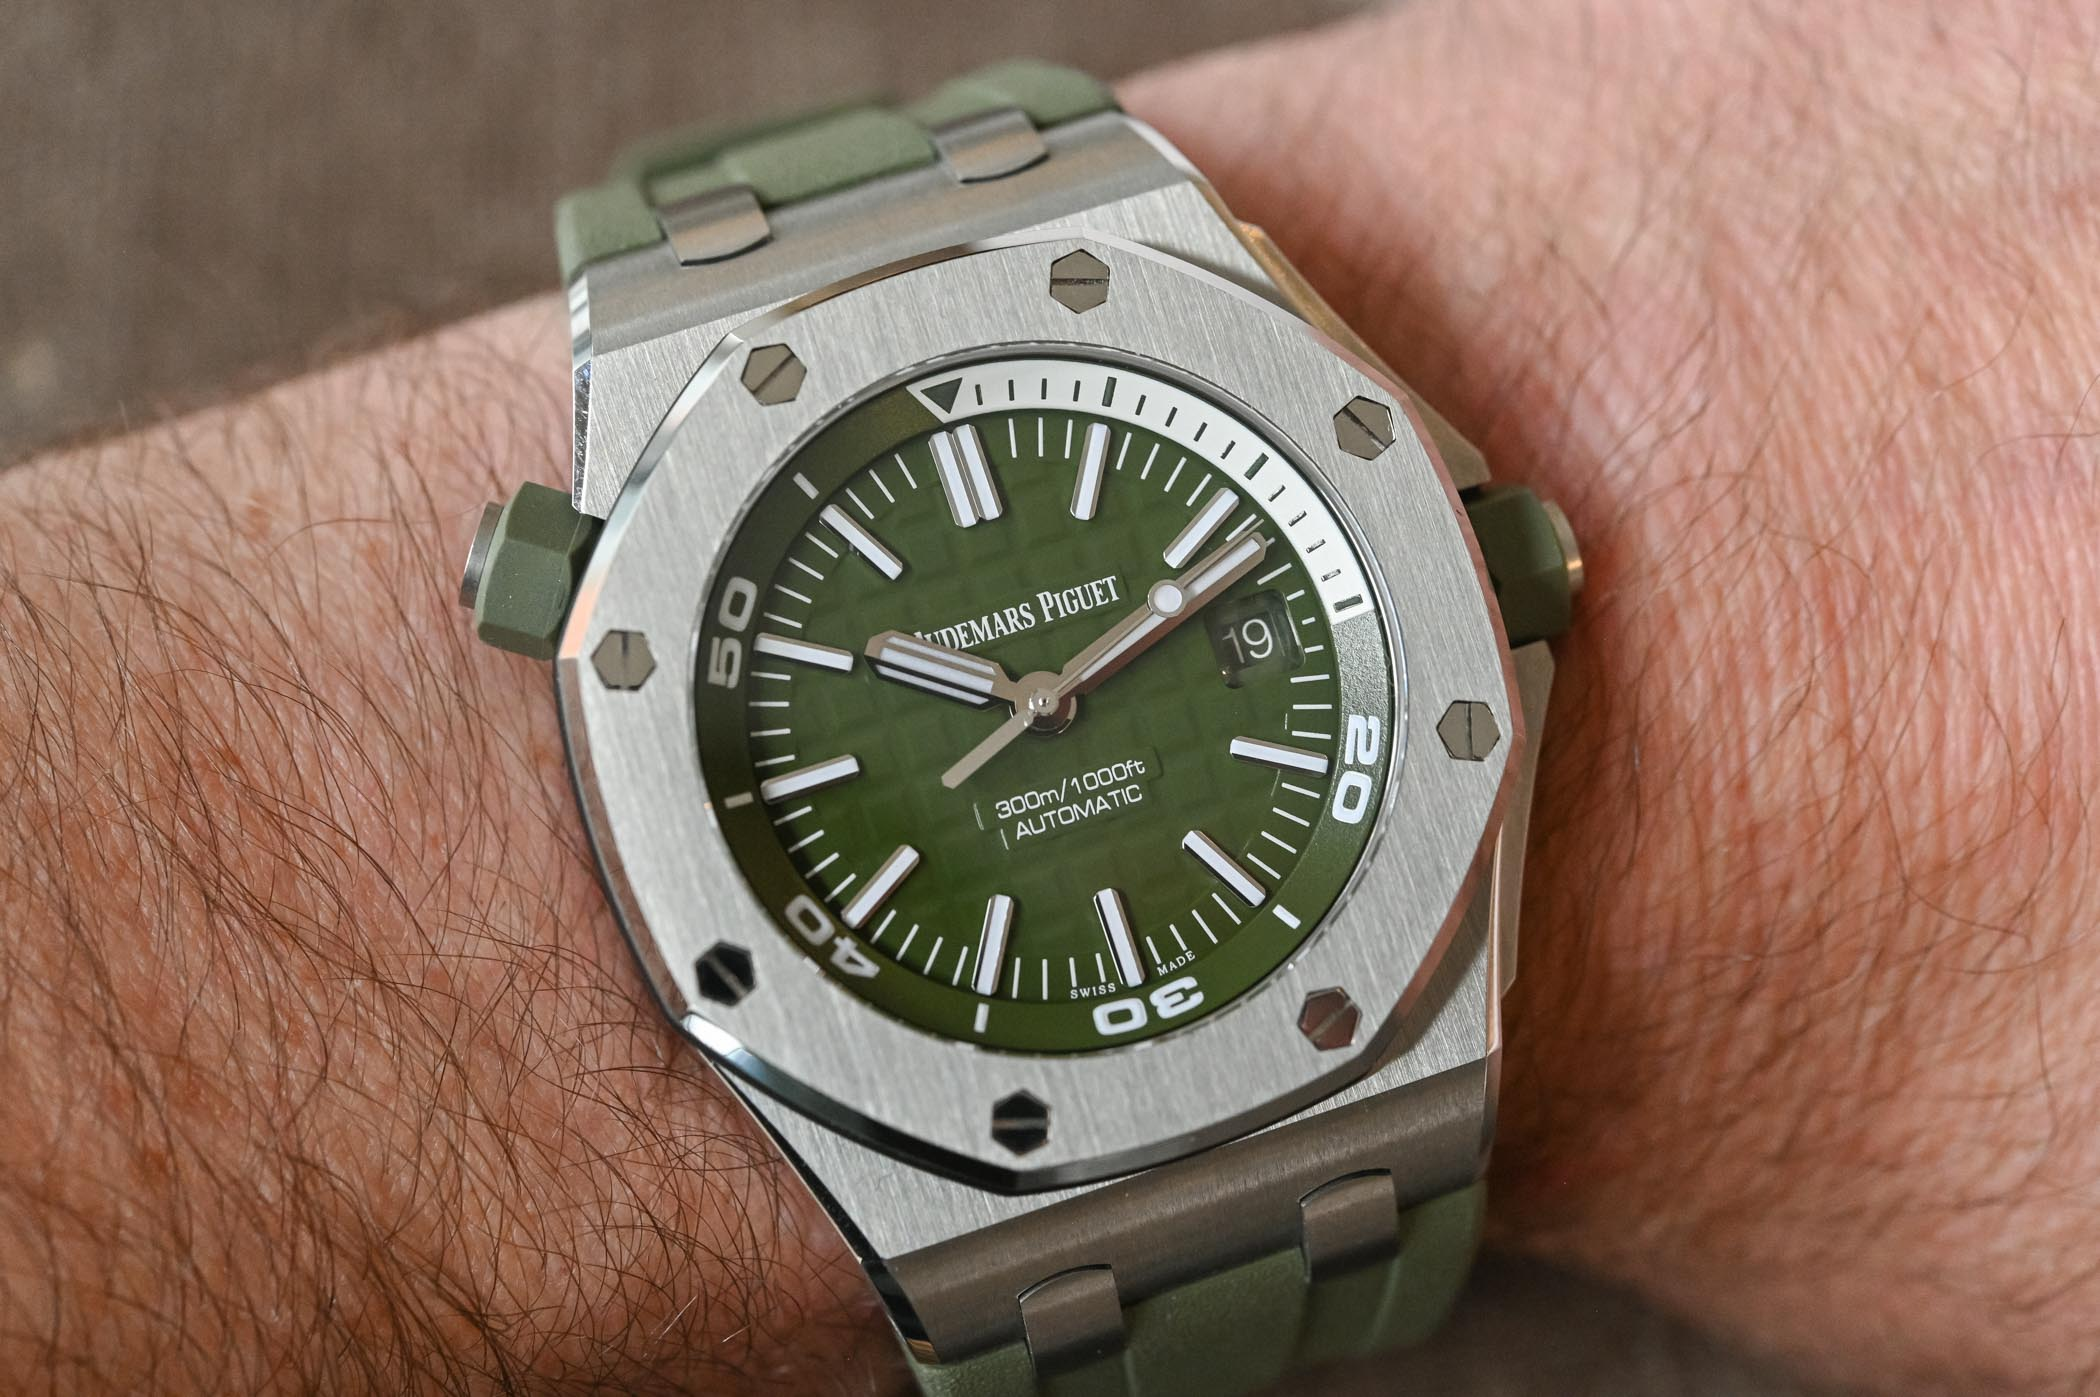 Audemars Piguet Royal Oak Offshore Diver Khaki Green - 15710ST.OO.A052CA.01 - Review - 7